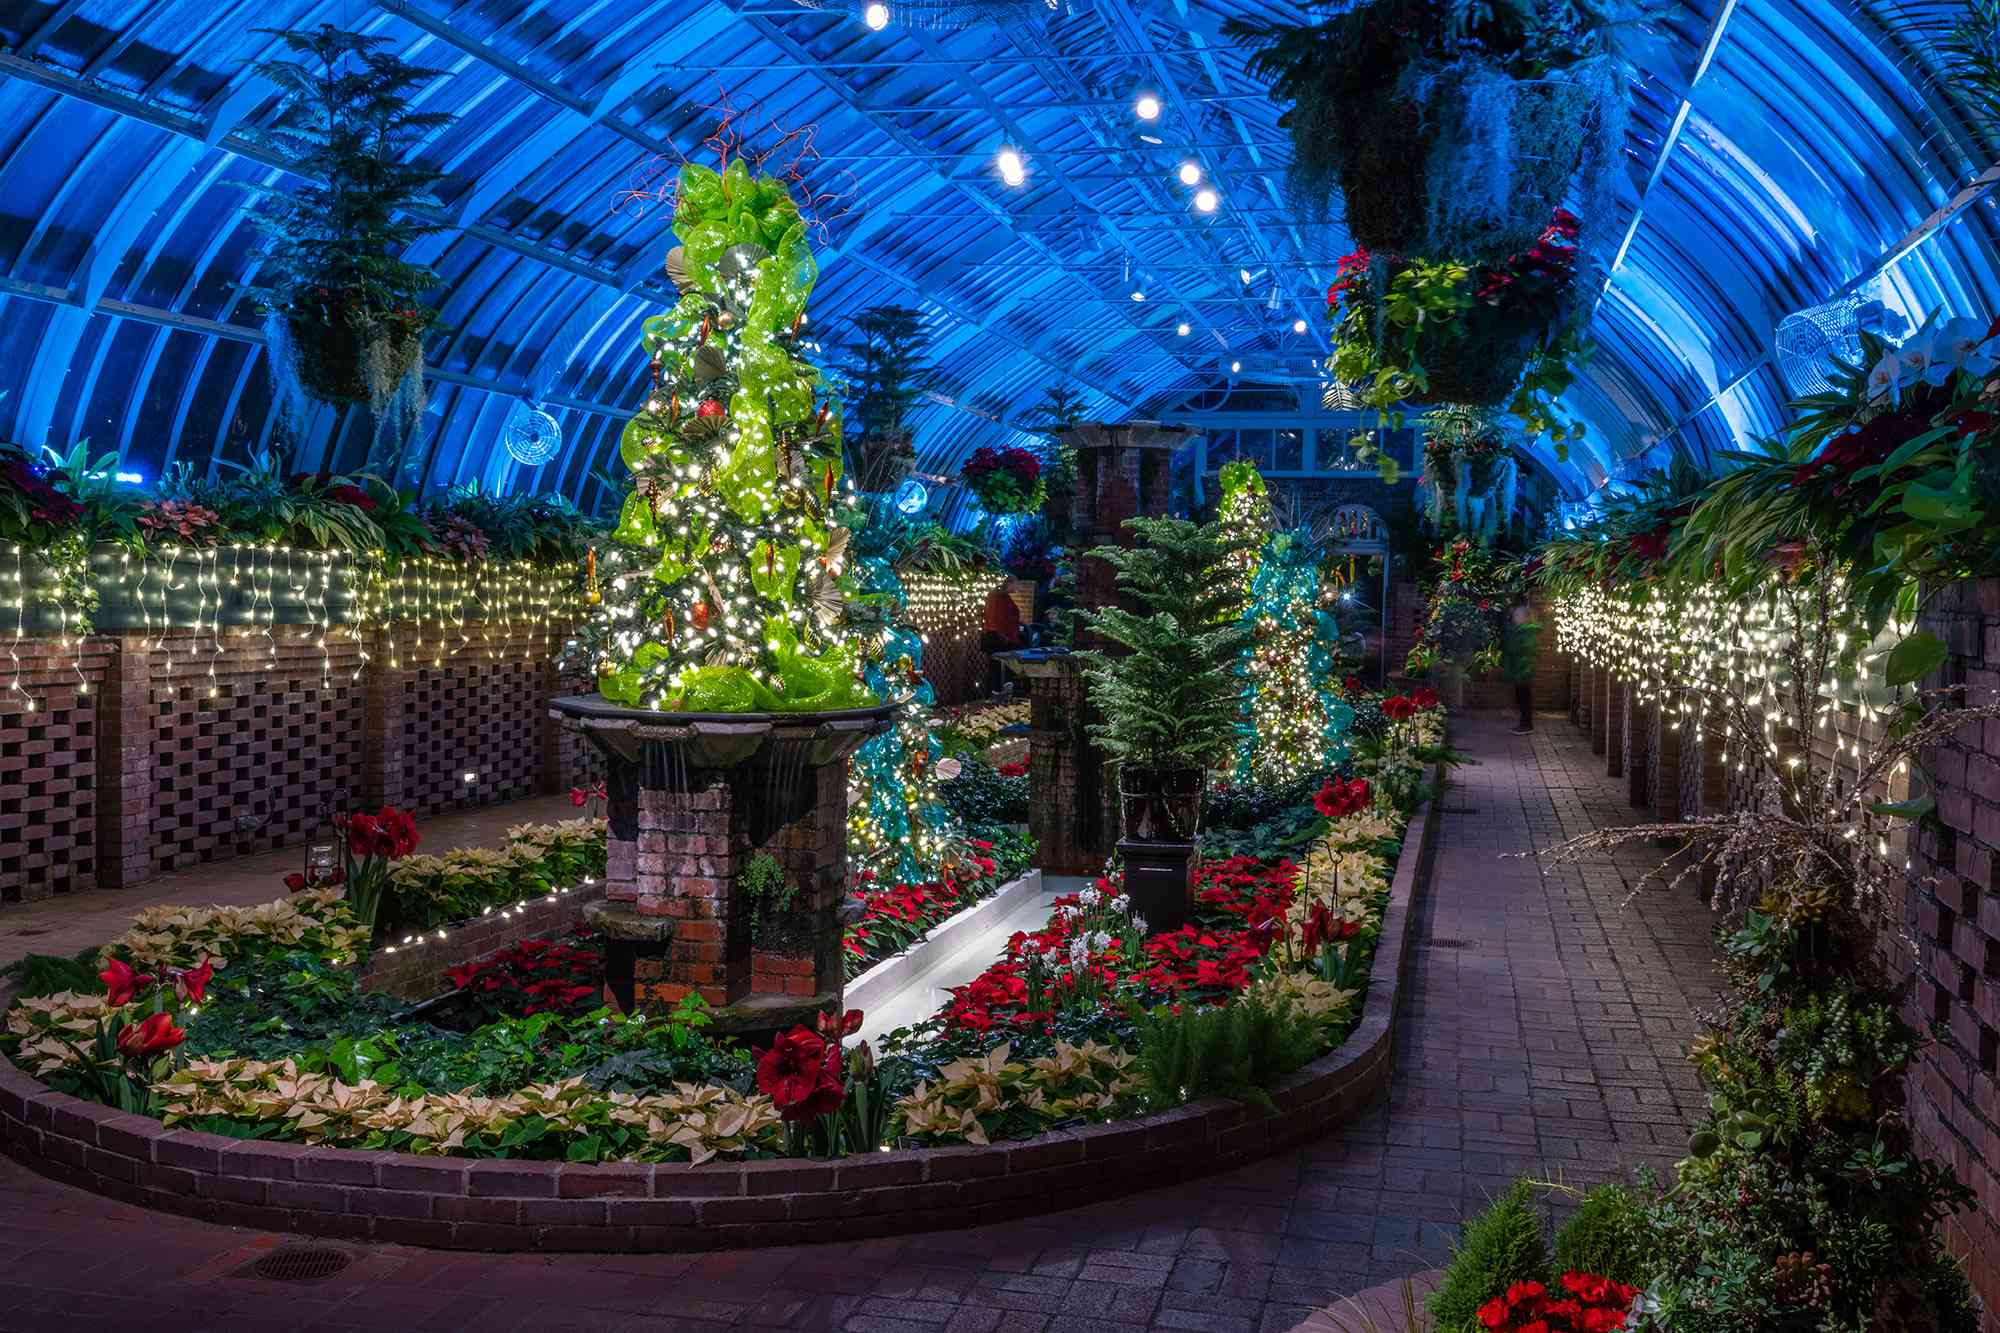 Winter Flower Show at Phipps Conservatory and Botanical Garden